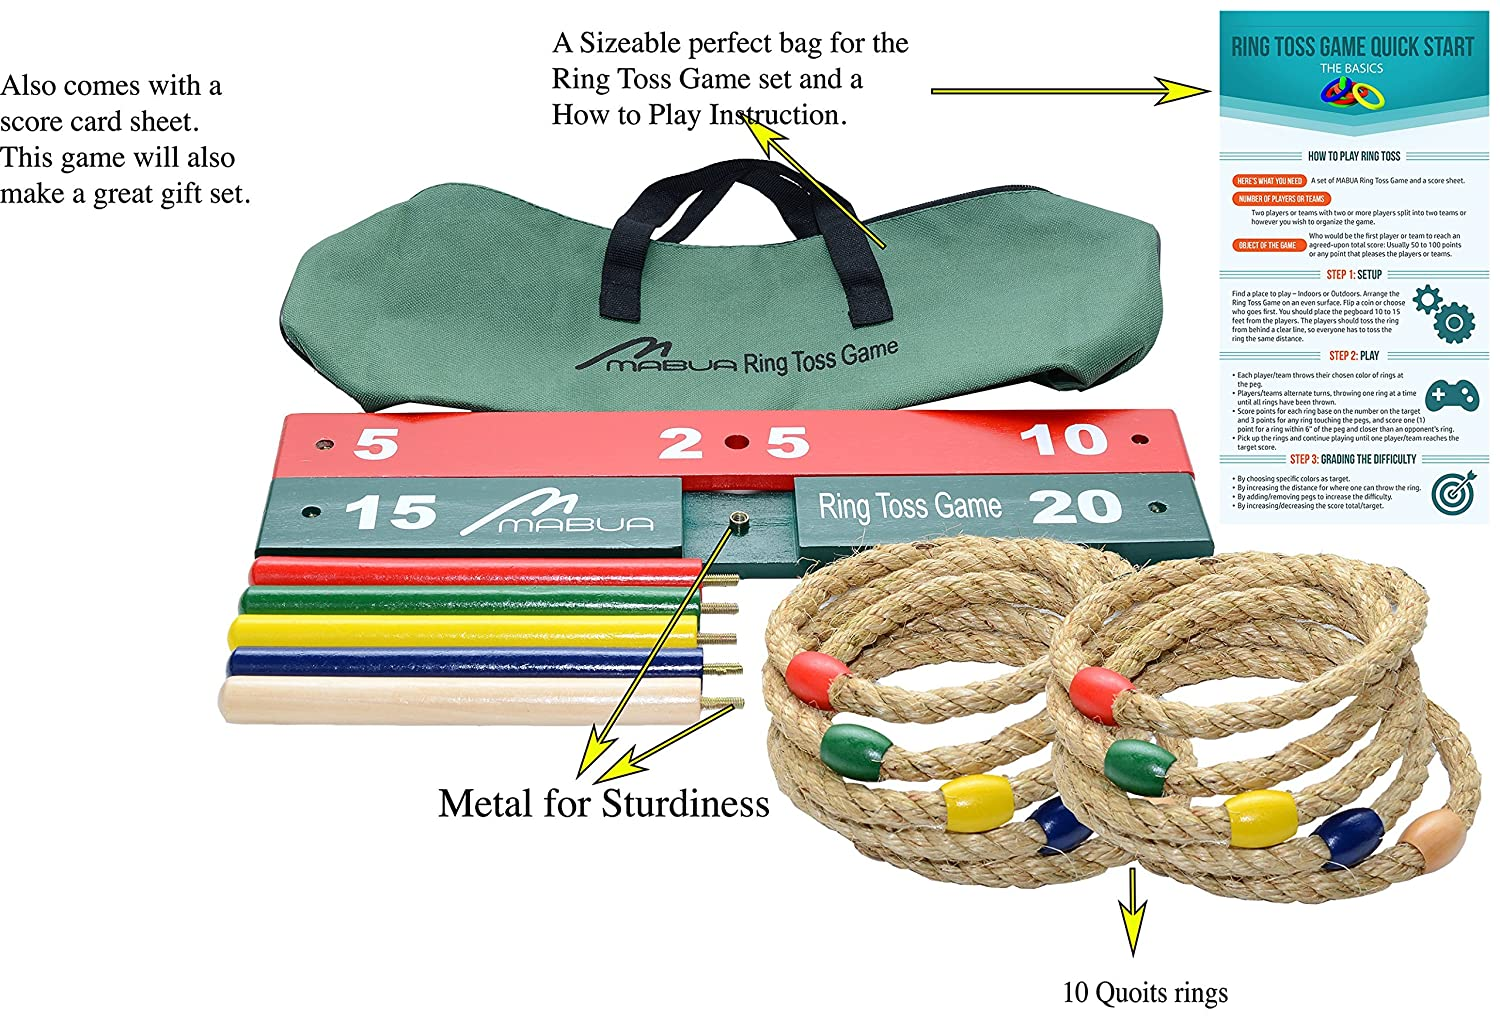 Ring toss games for kids - Mabua Ring Toss Outdoor Games Kids Adults With 10 Quoits Carry Bag Toys For 5 Year Old Boys Girls Also Available 10 Quoits And 15 Plastic Ropes Sports